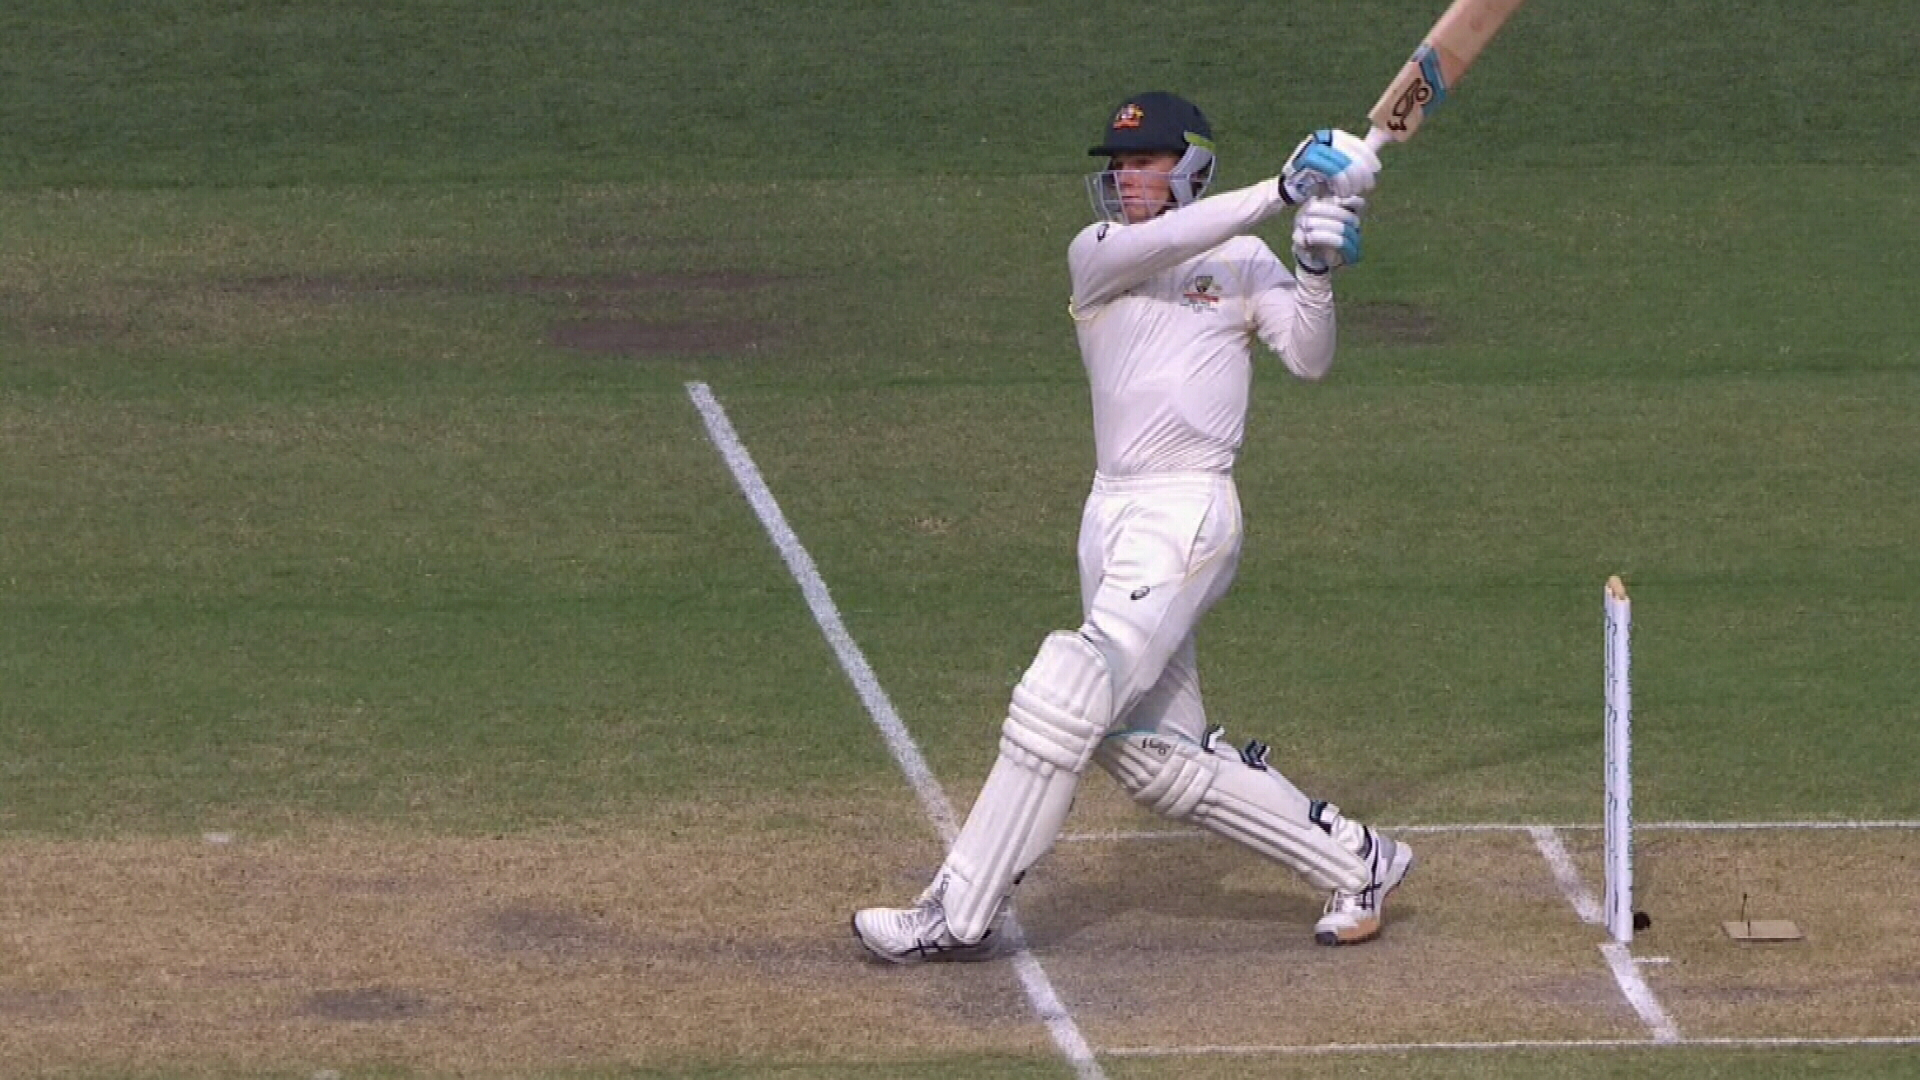 Handscomb holes out